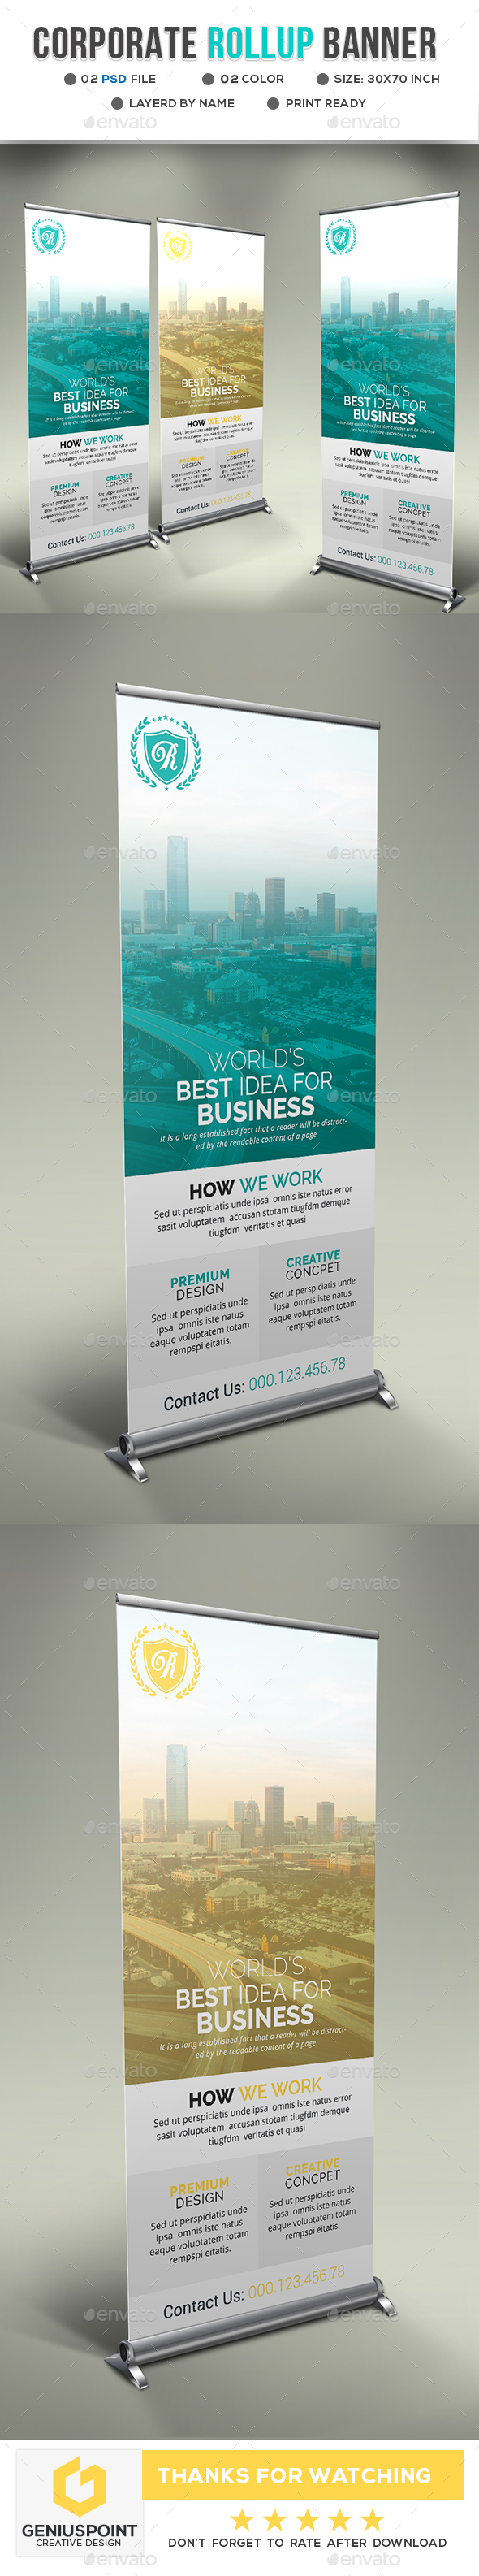 GraphicRiver Corporate Roll-Up Banner 21143963